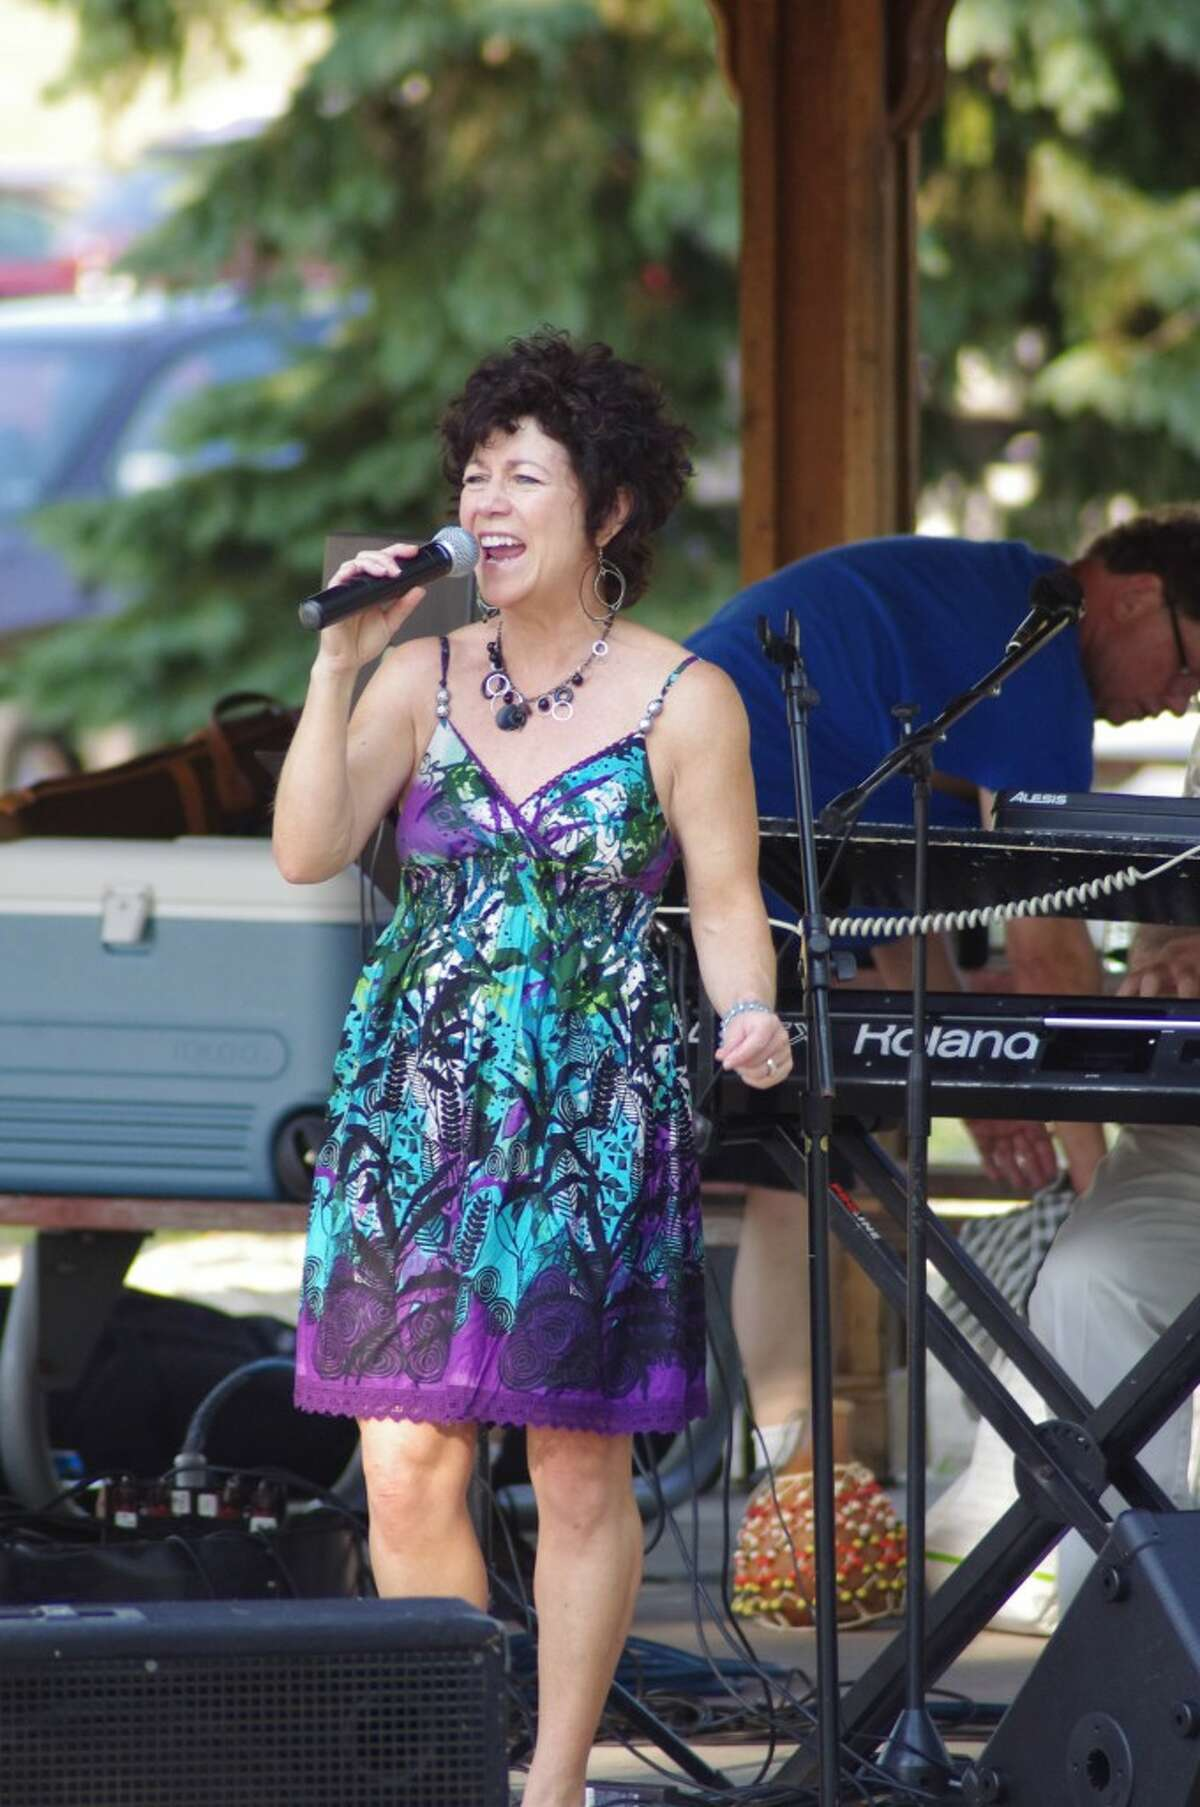 Mary Rademaker will join the Mark Kahny Band to perform the tenth and final 2013 concert of the Manistee ShoreLine ShowCase series at 7 p.m. Tuesday at the Rotary Gazebo at First Street Beach in Manistee. (News Advocate)